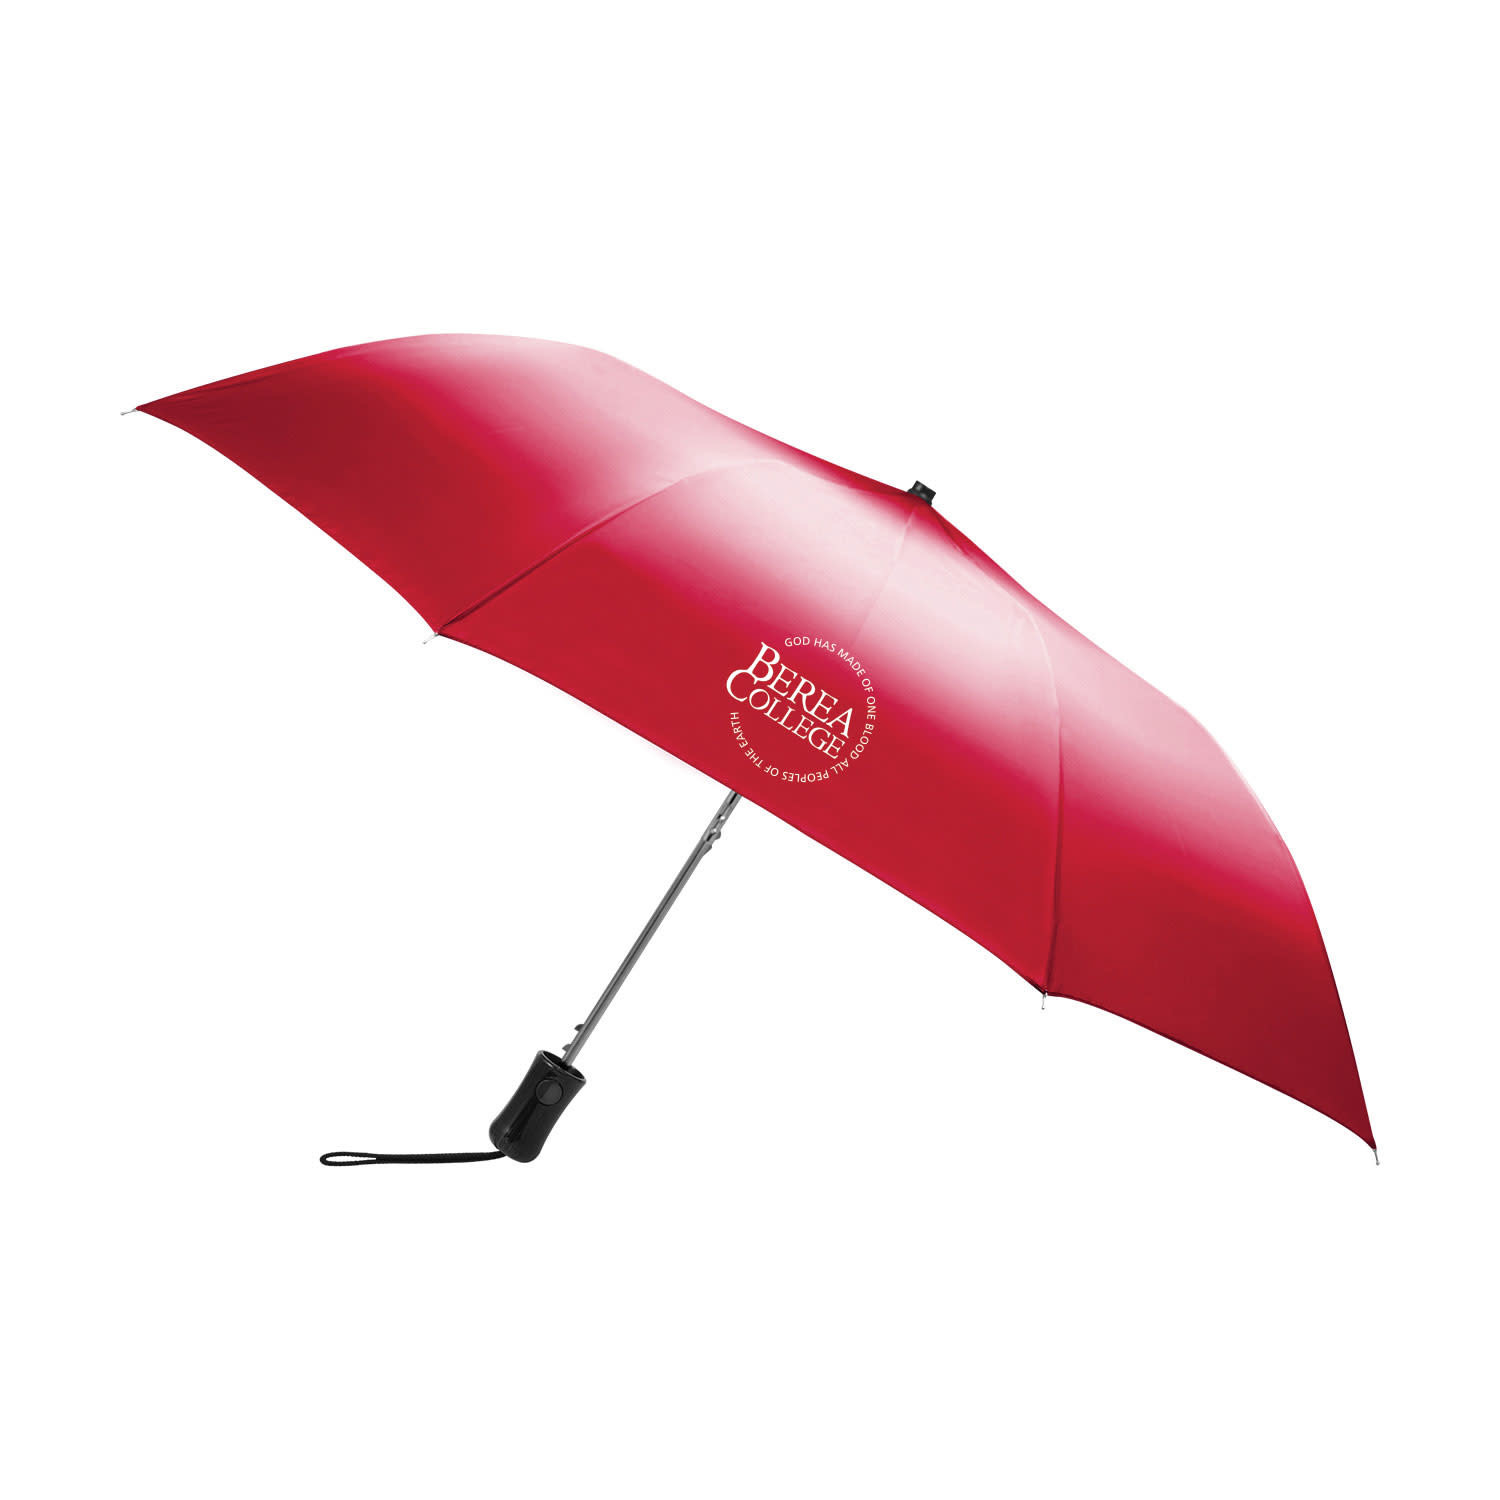 Berea College Umbrella-3